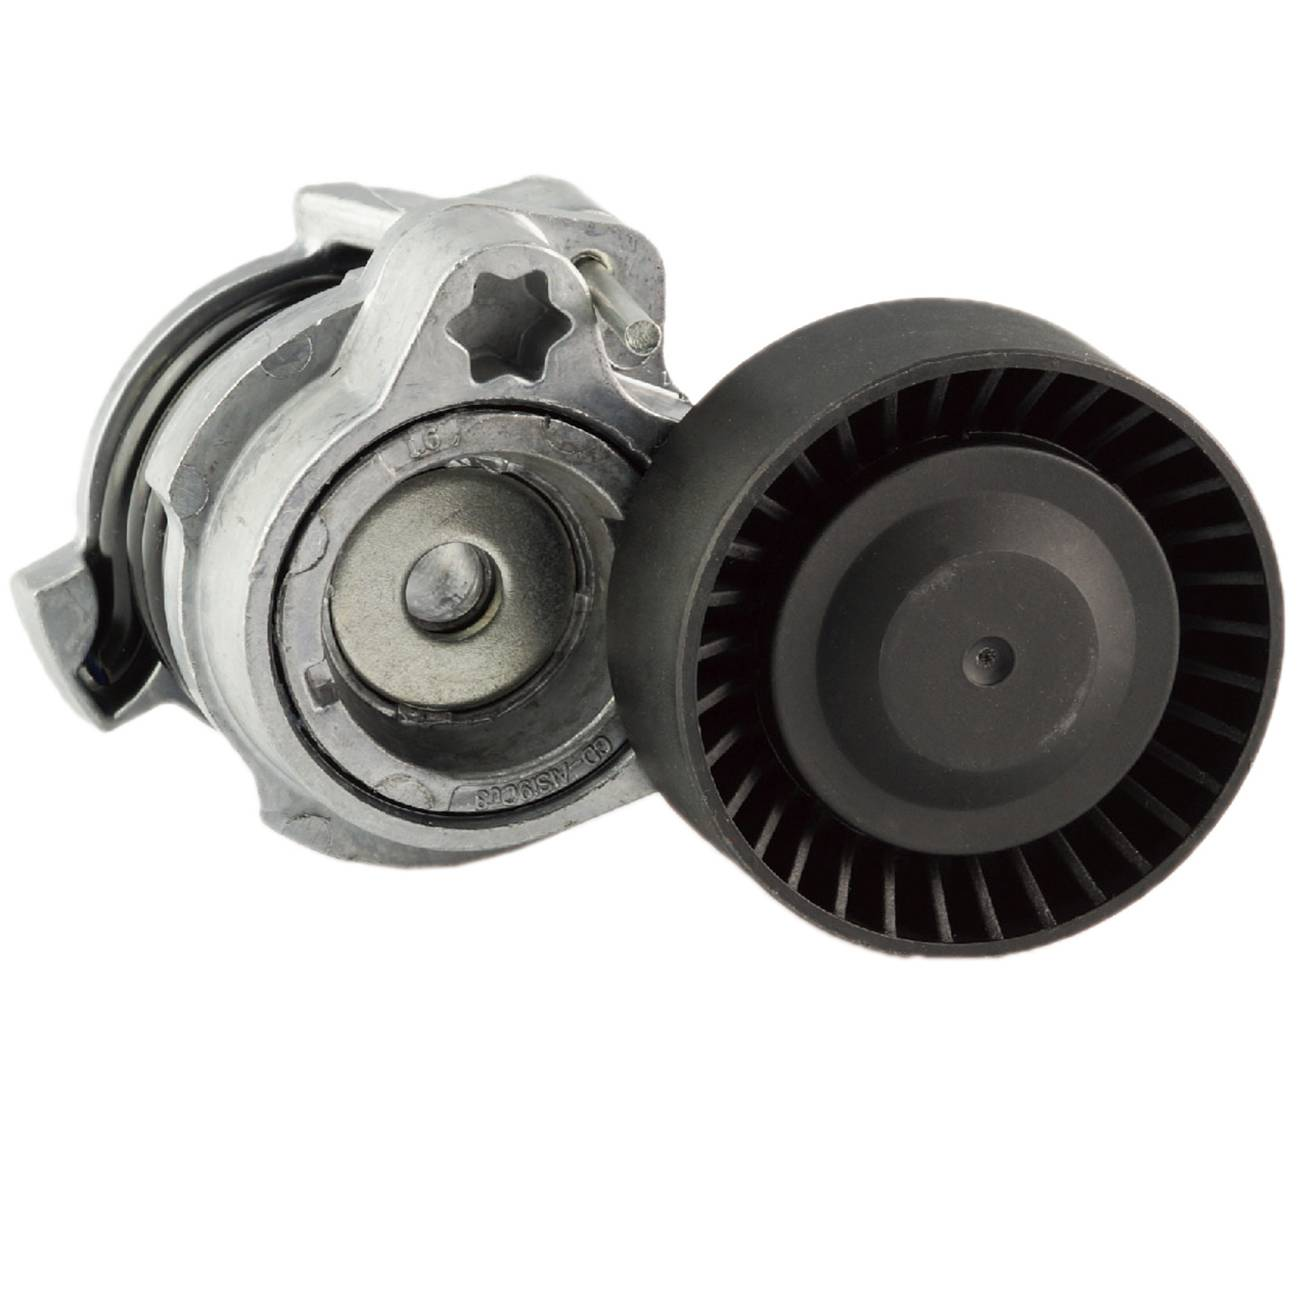 Bapmic-Timing-Belt-Tensioner-V-Rib-for-BMW-545i-550i-735i-E60-61-53